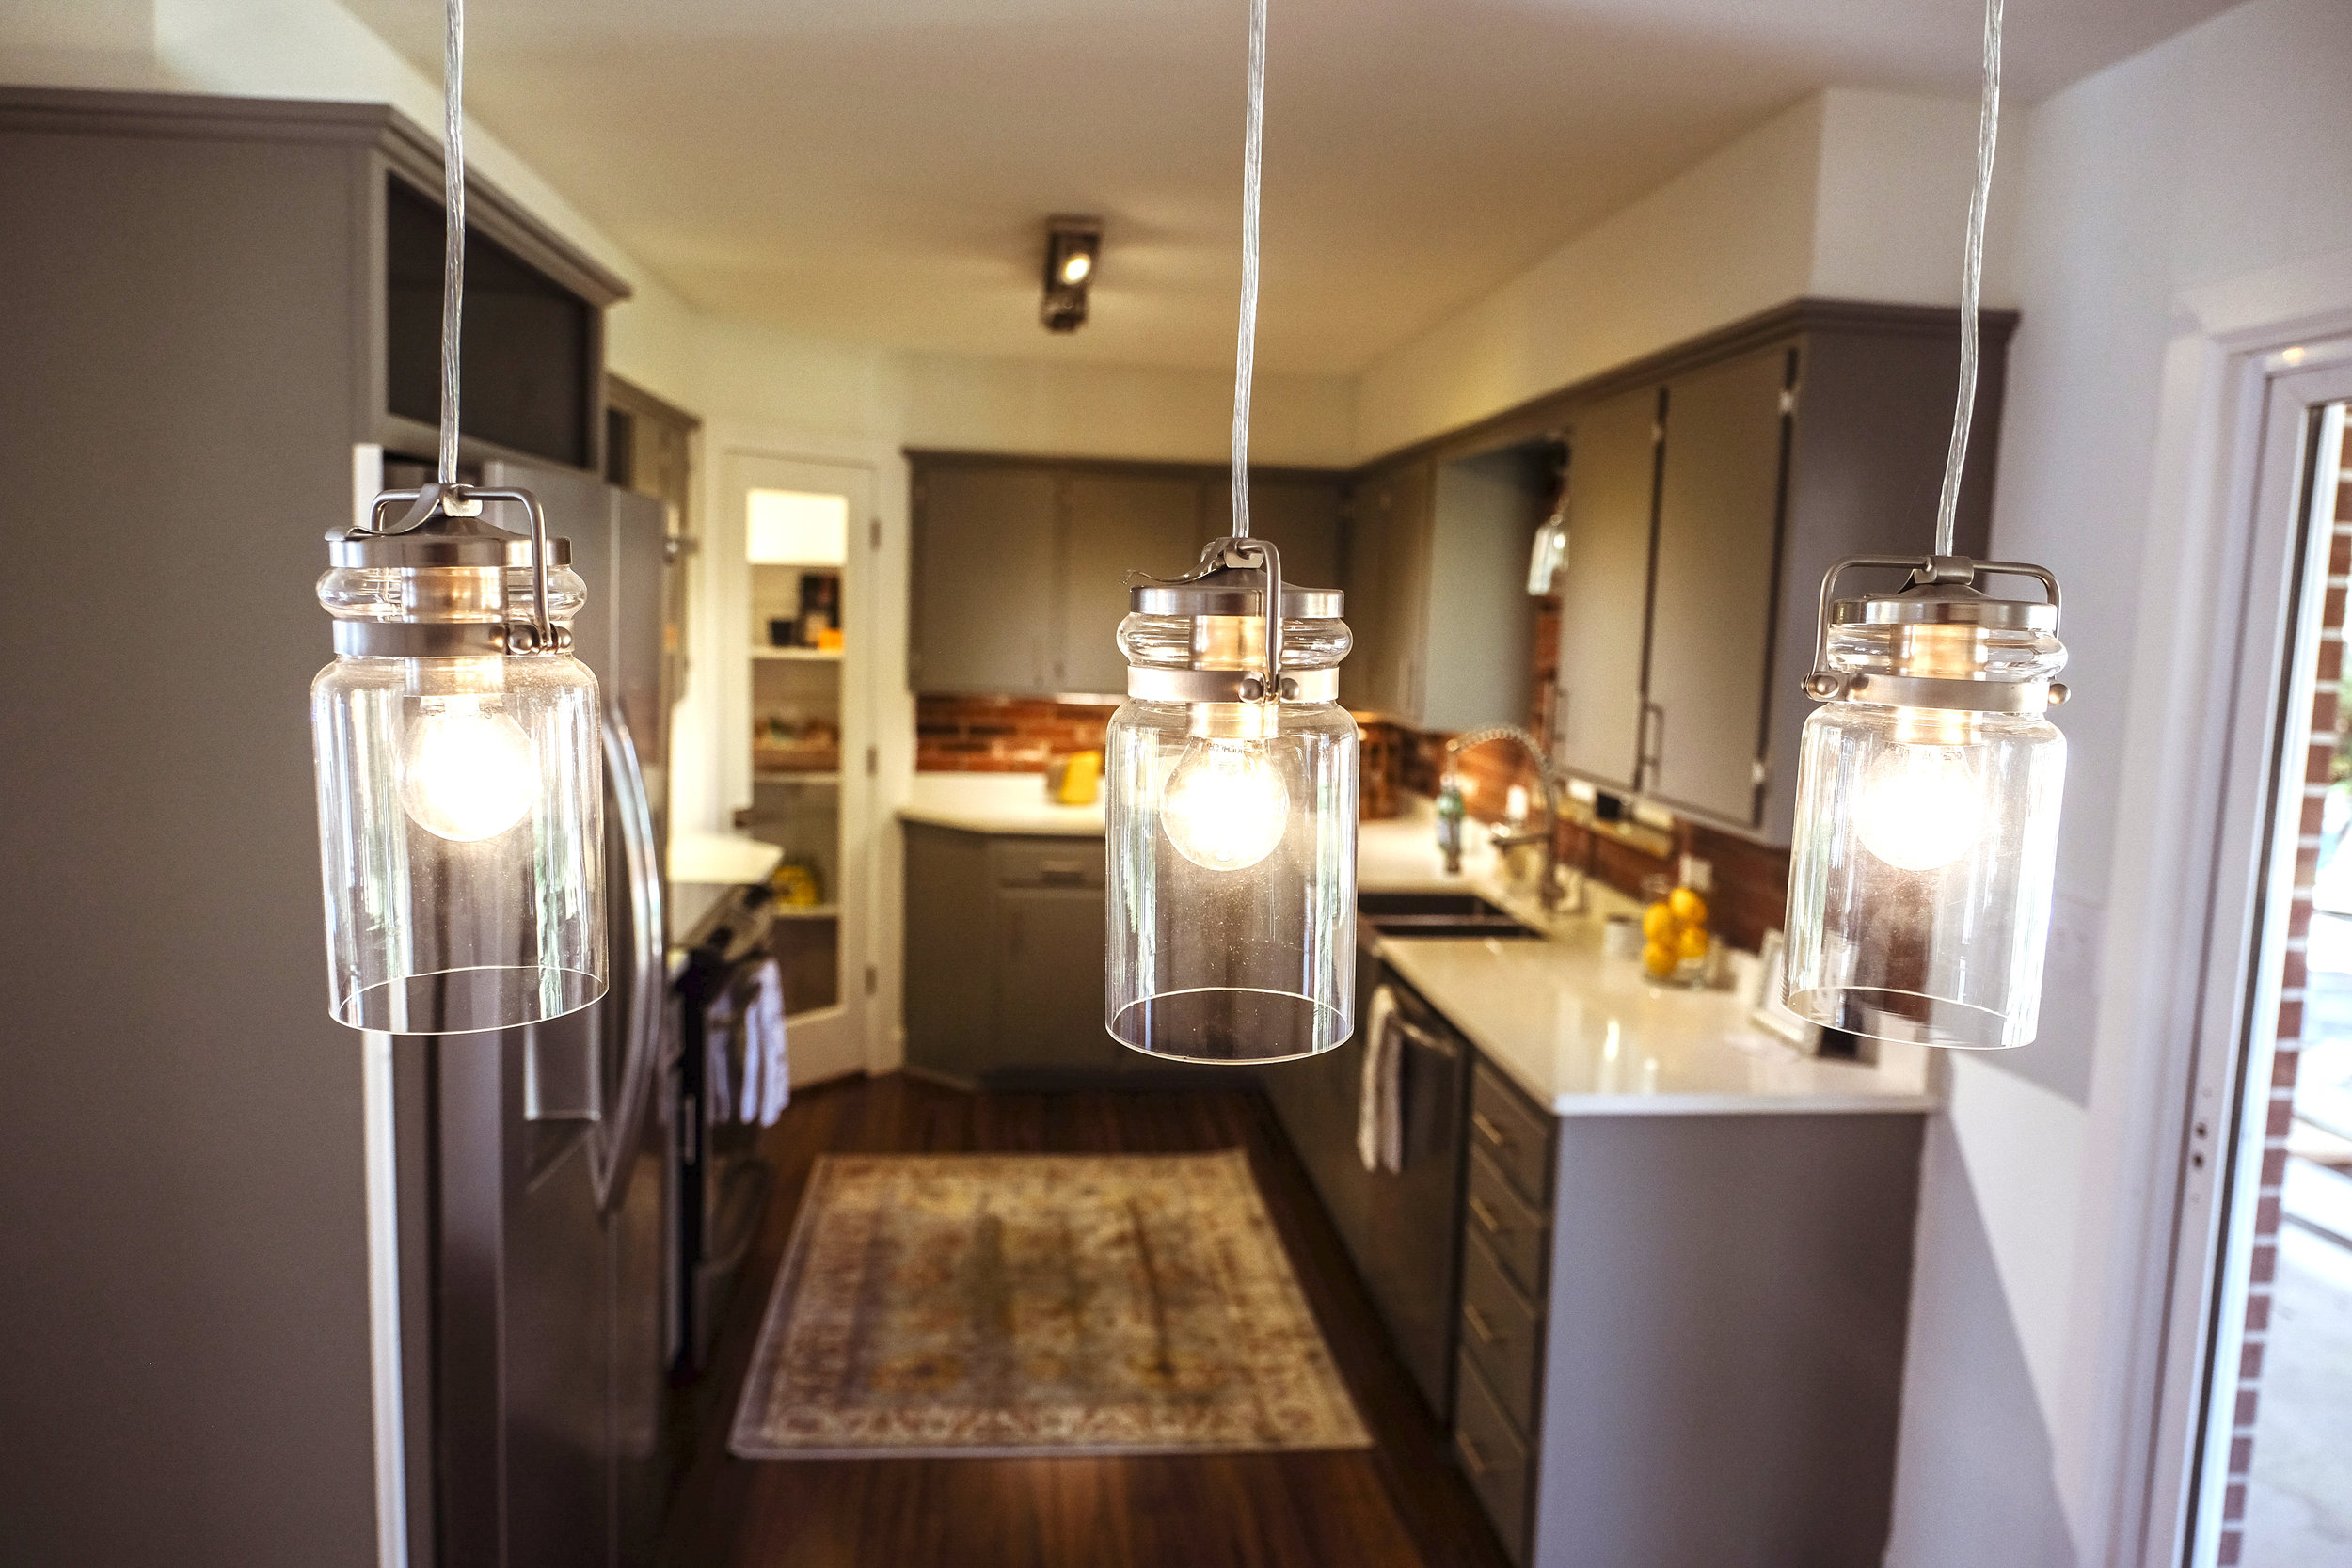 The solid construction and mid-century styling of the cabinets convinced us to restore rather than replace the original cabinets.